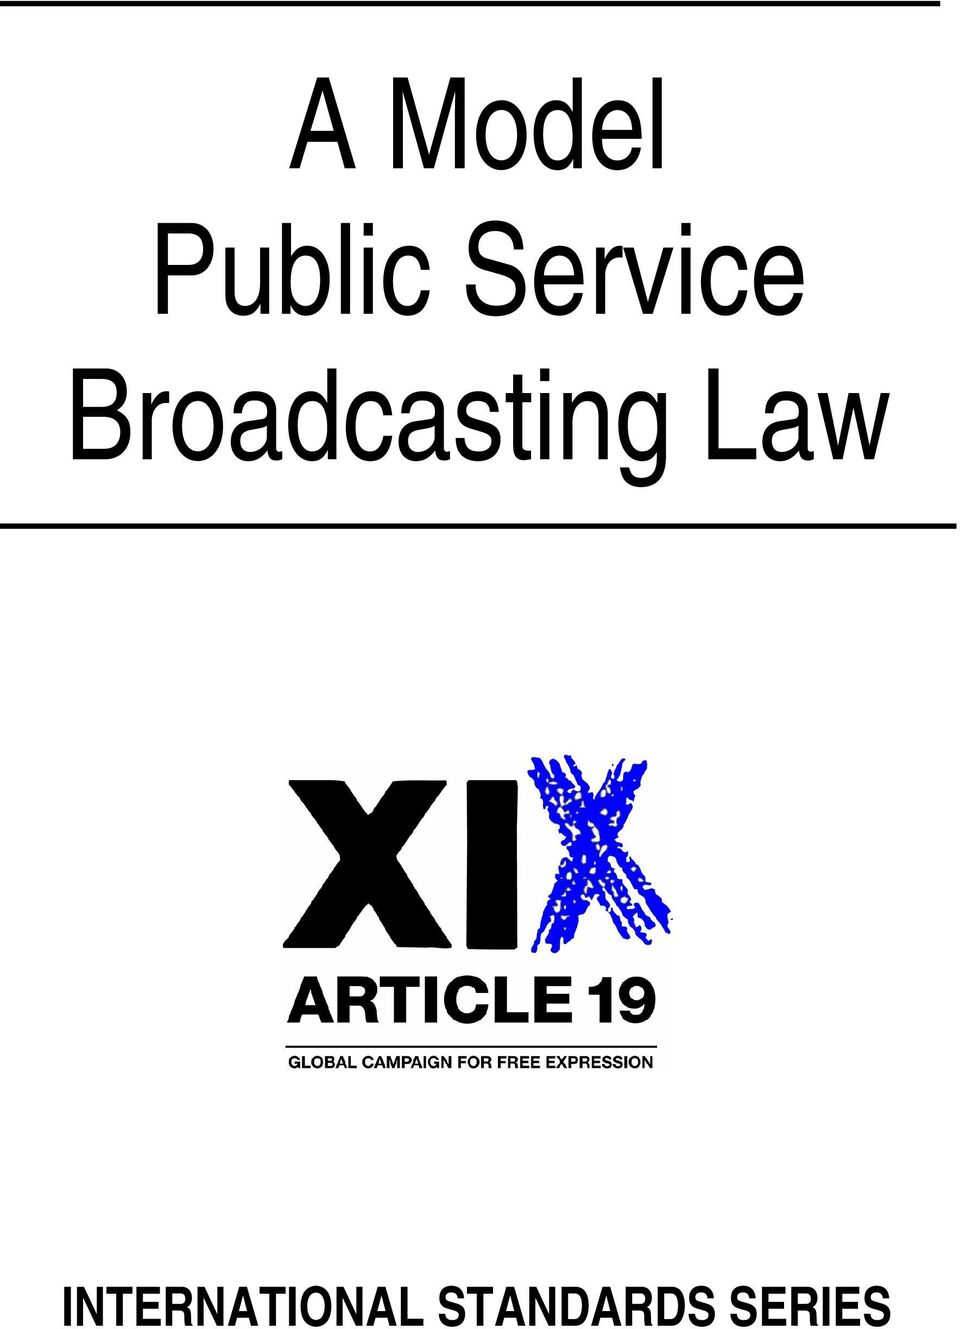 Broadcasting Law